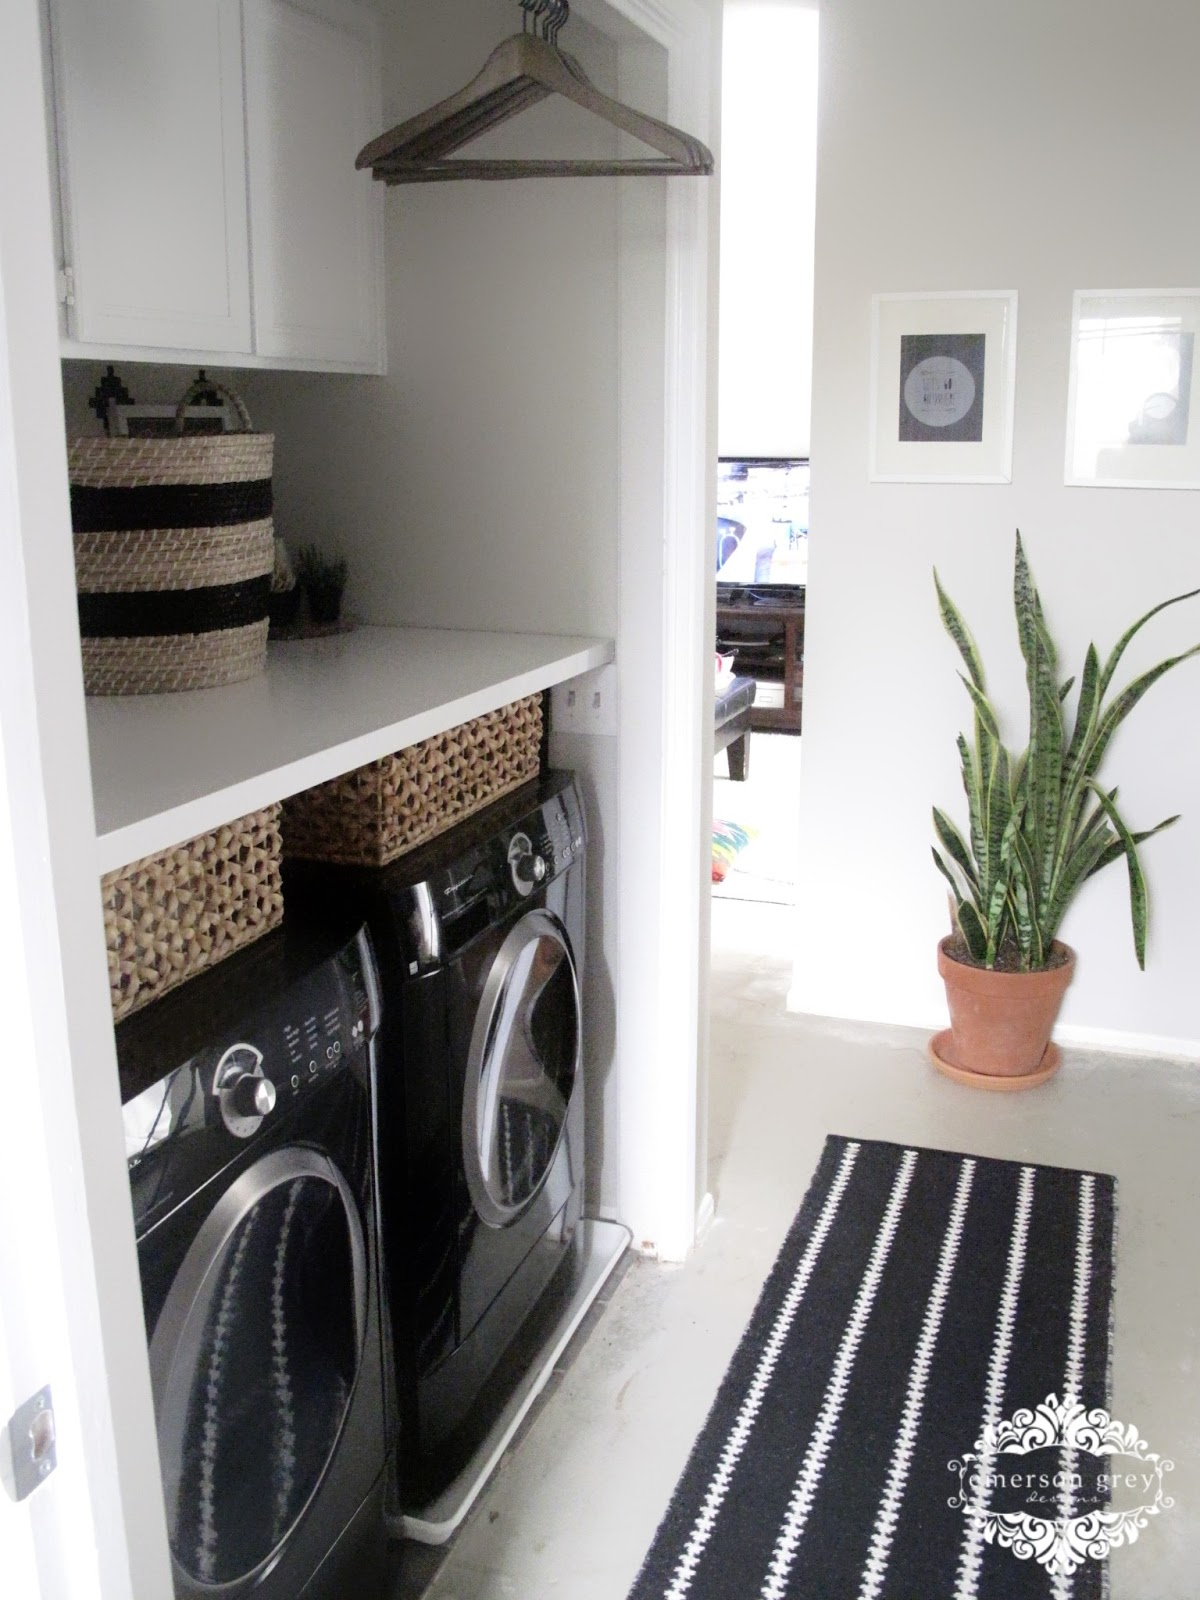 Our New Home Part 6 Laundry Room Redo